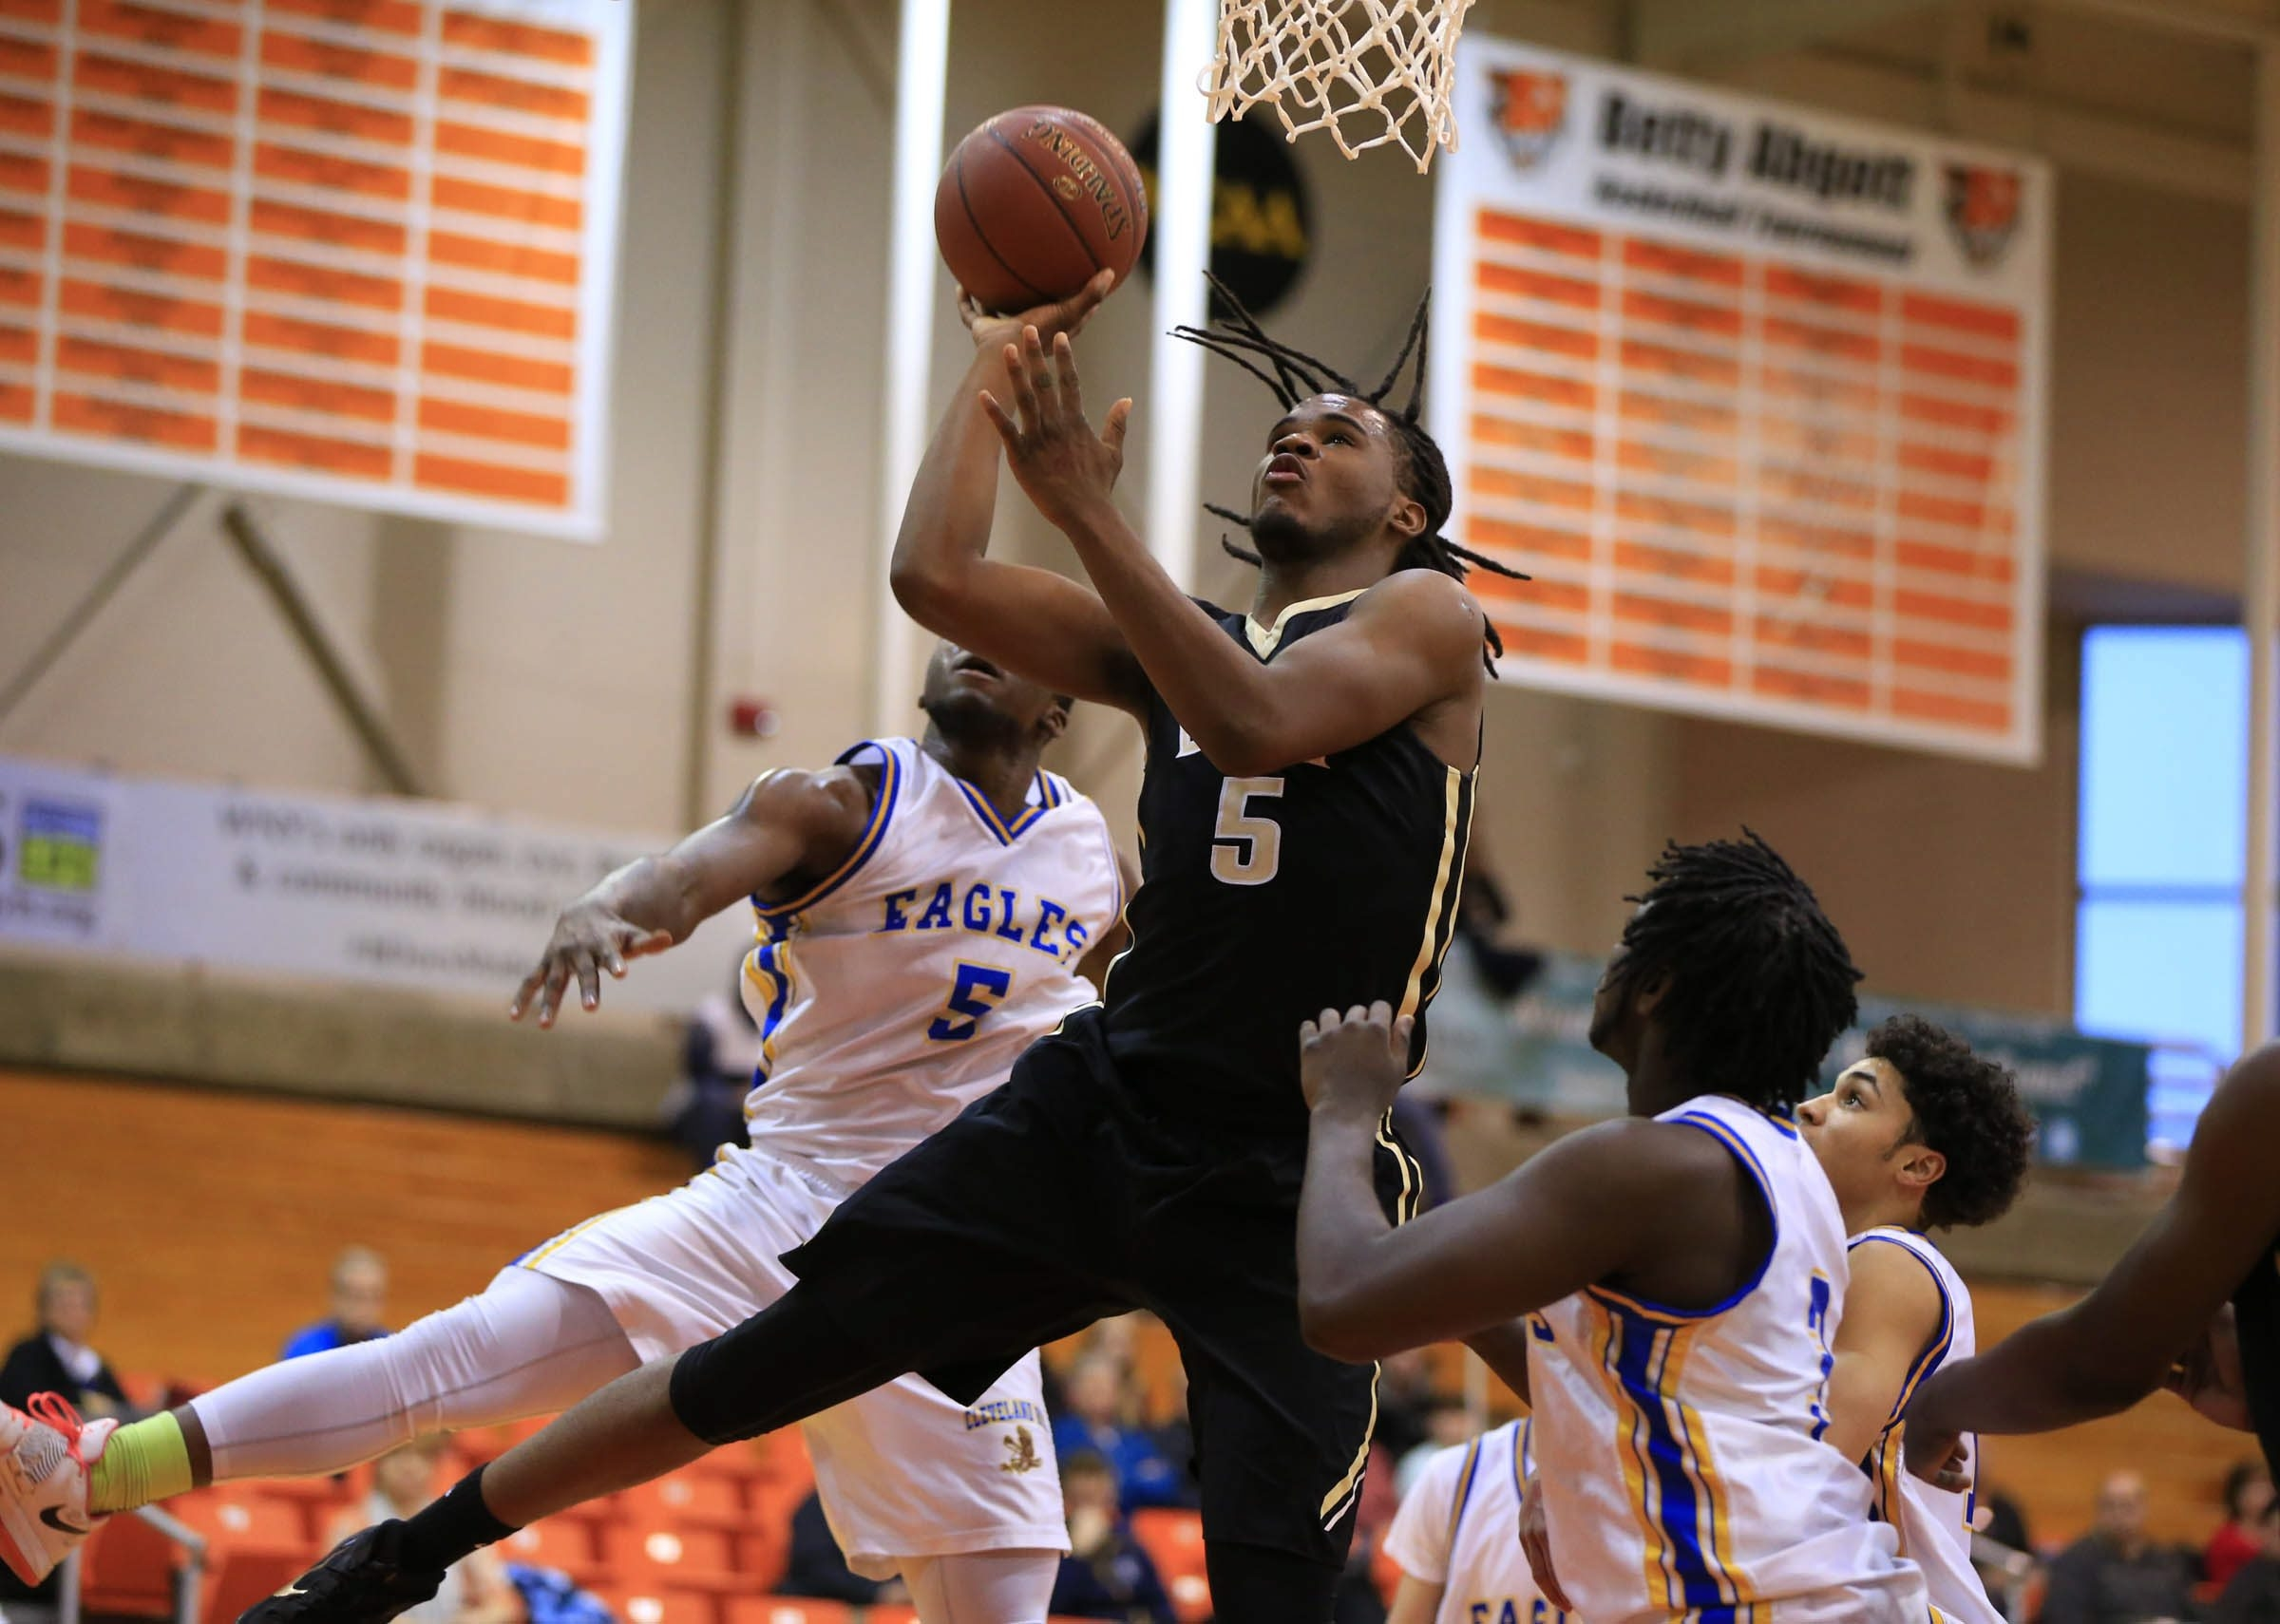 East's Jovell Littlejohn shoots over Cleveland Hill's Jermaine Hairston during the first half Tuesday at Buffalo State. East advanced to its sixth title game in a row, 59-44.